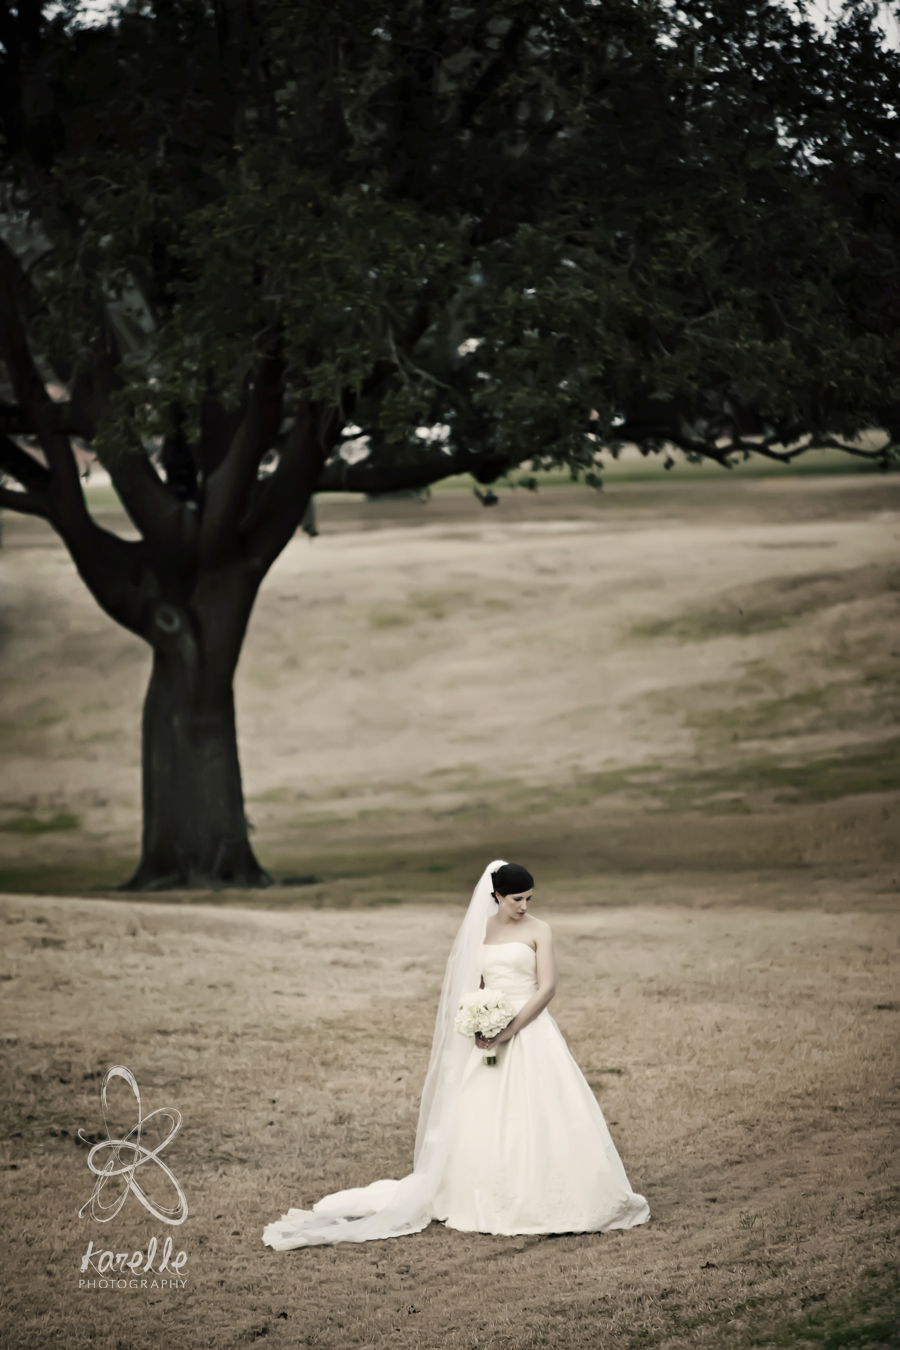 Houston wedding photographer Janna07.jpg